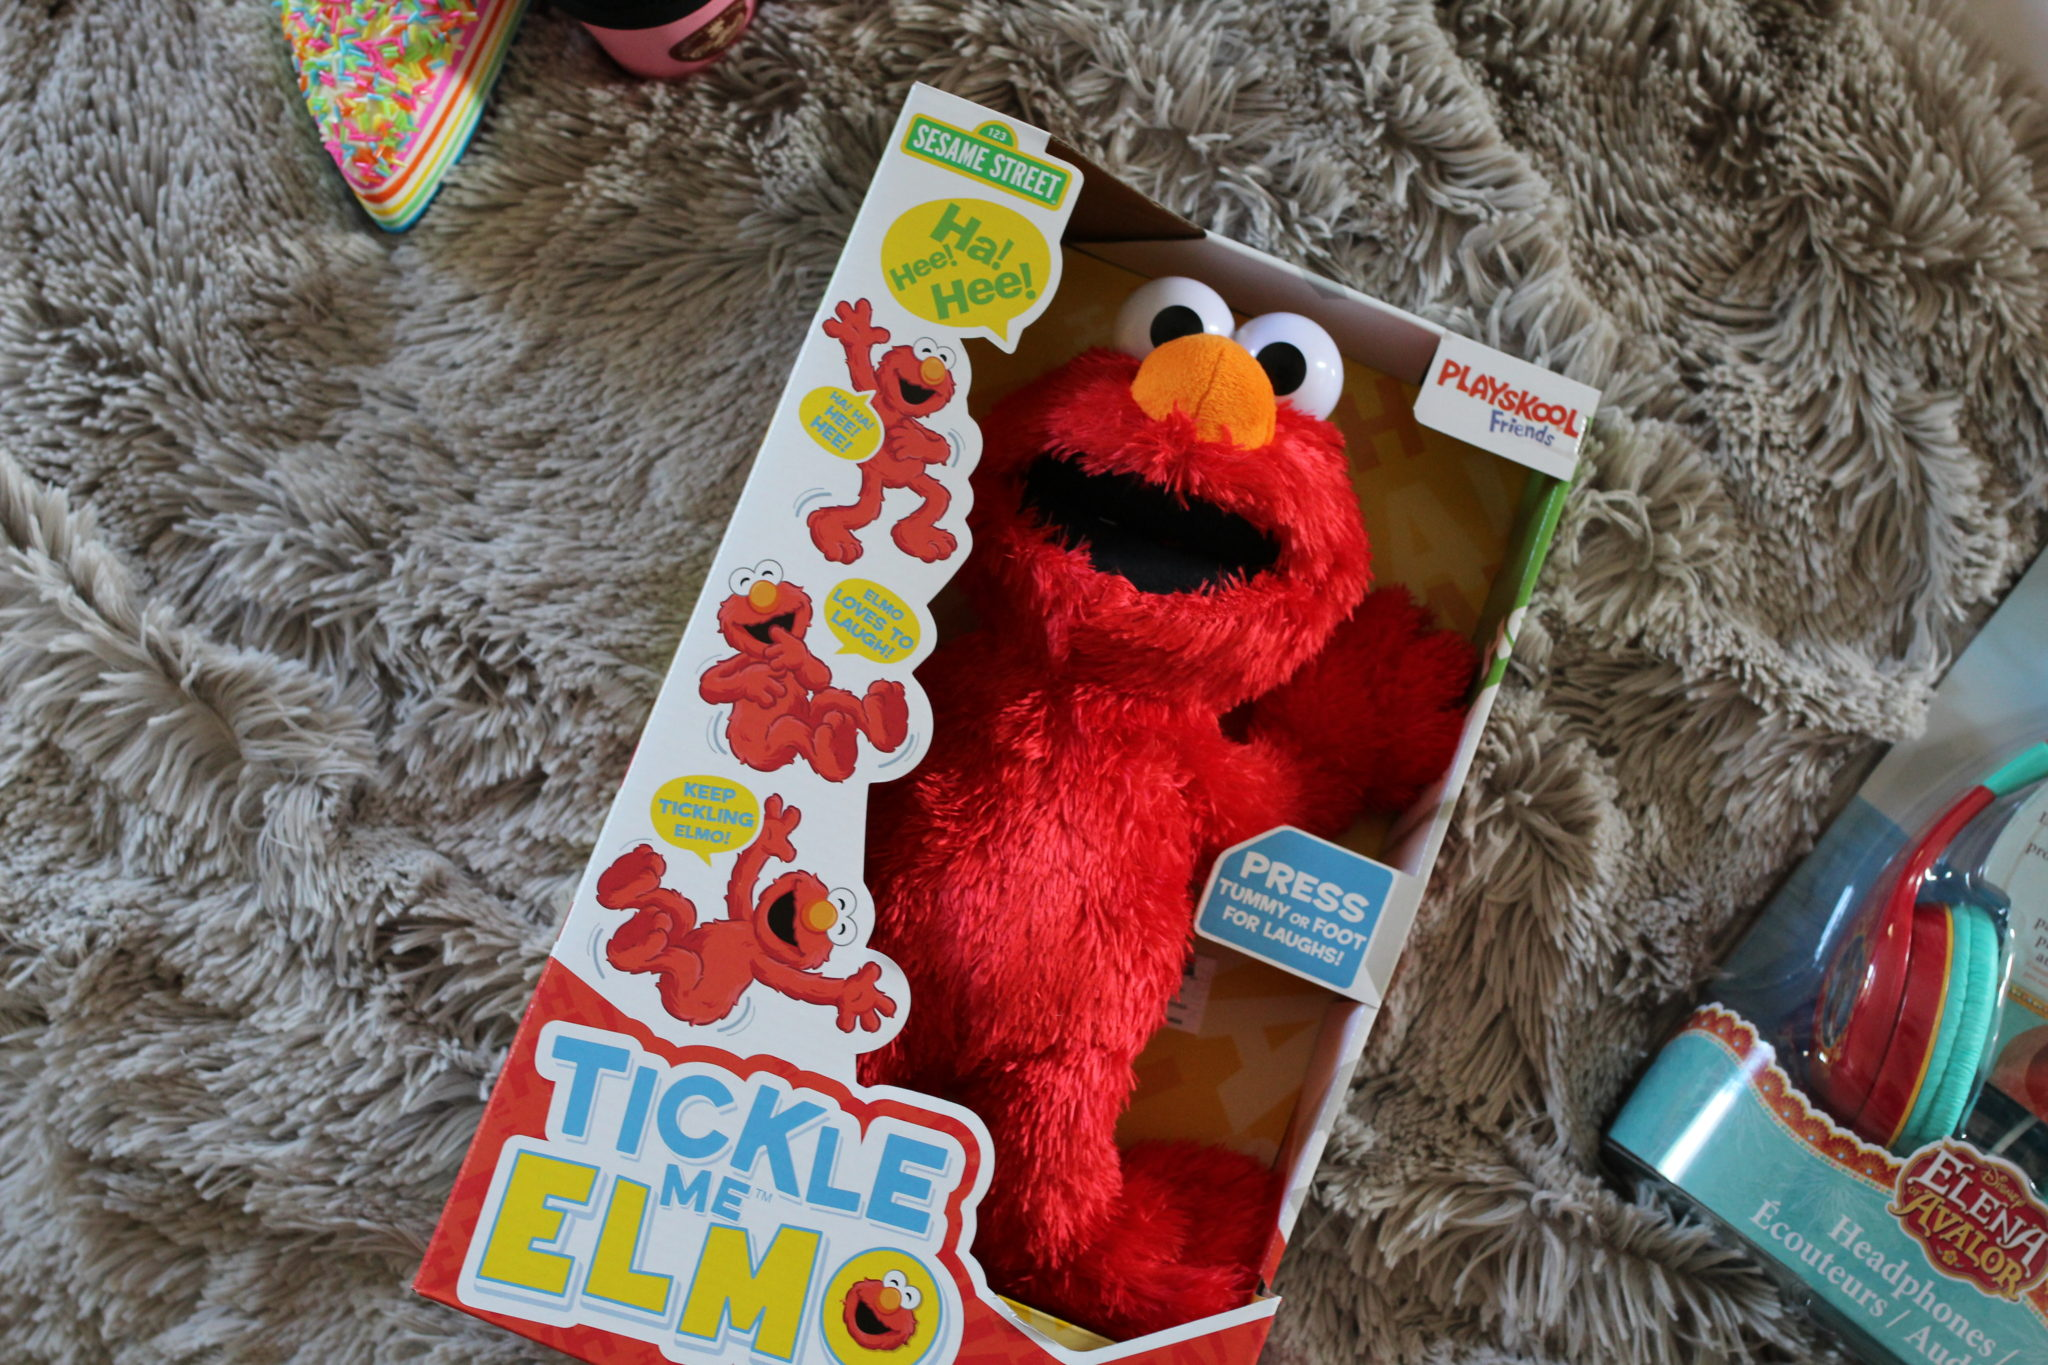 Tickle Me Elmo, Toddler Gifts, Toddler Toys